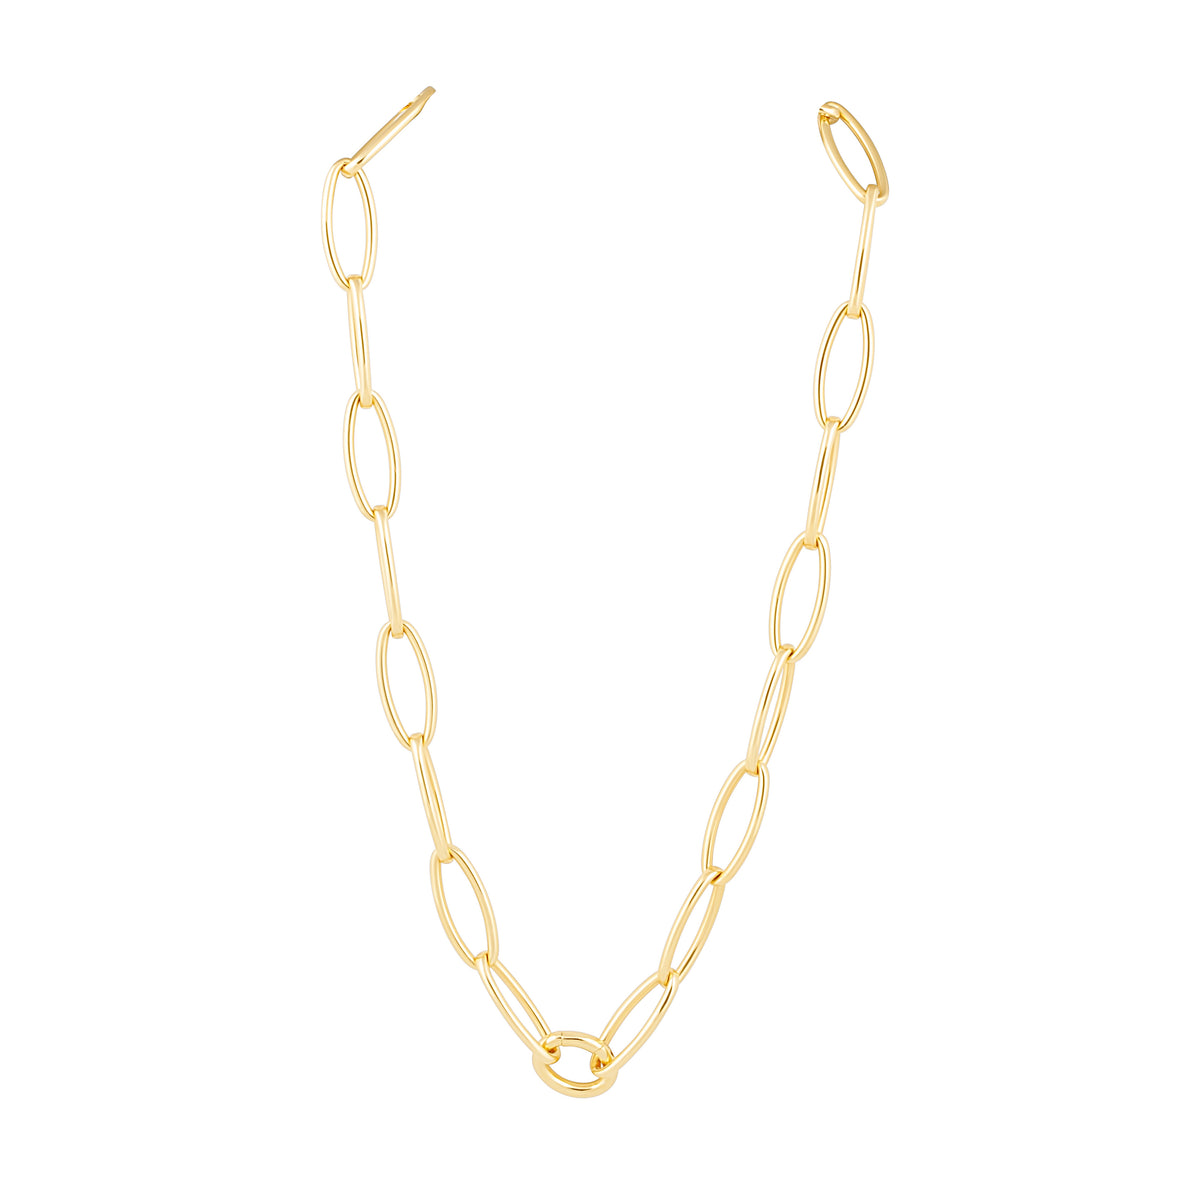 Love Chain Link Necklace